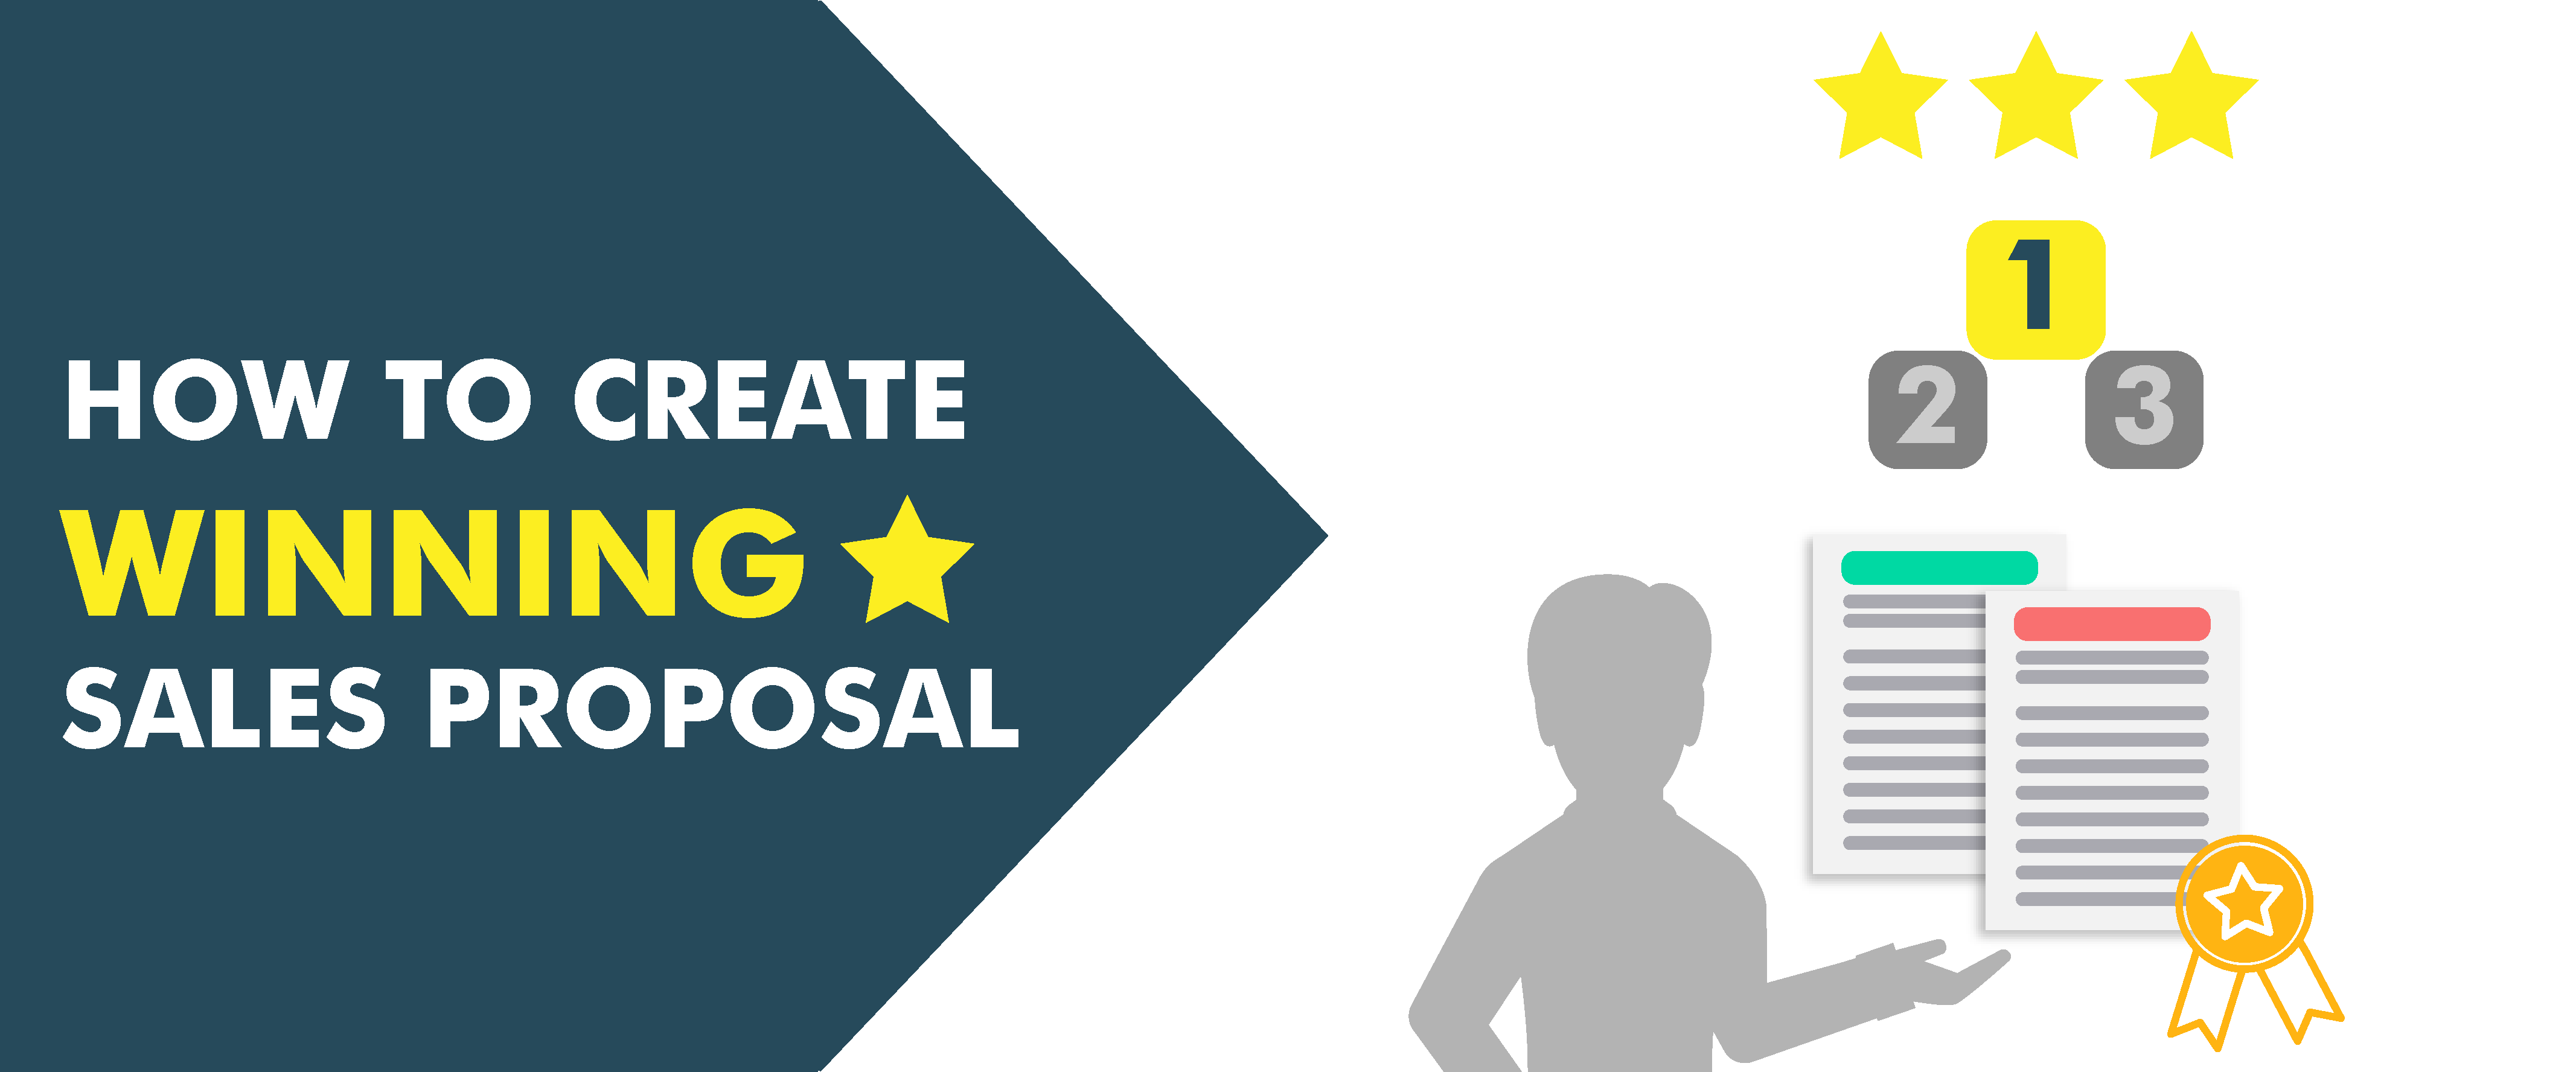 How to Create Winning Sales Proposal